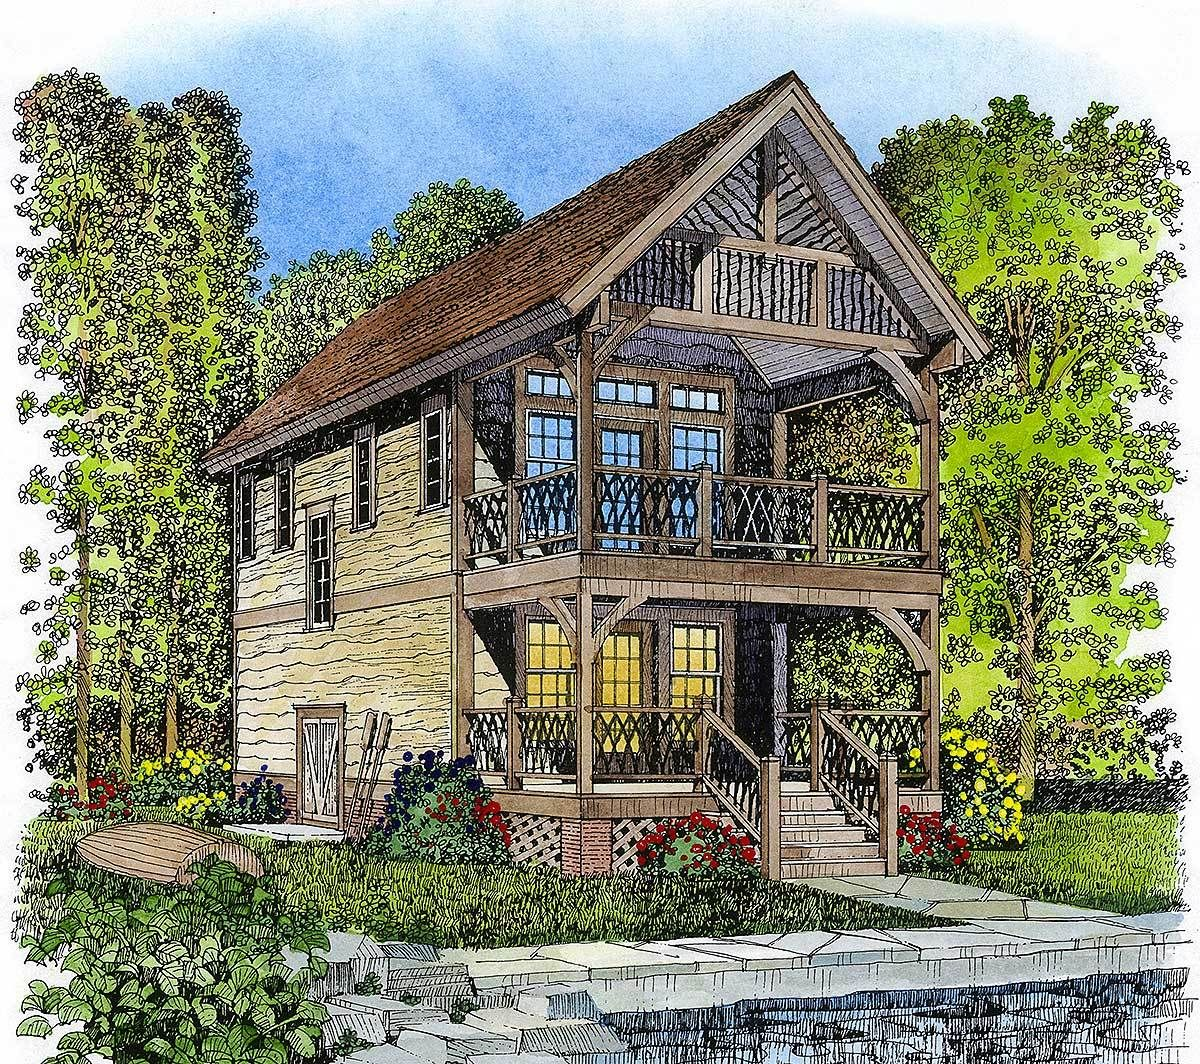 Plan 43041pf Petite Adirondack Style Retreat In 2021 Adirondack House Plans Entry Doors With Glass